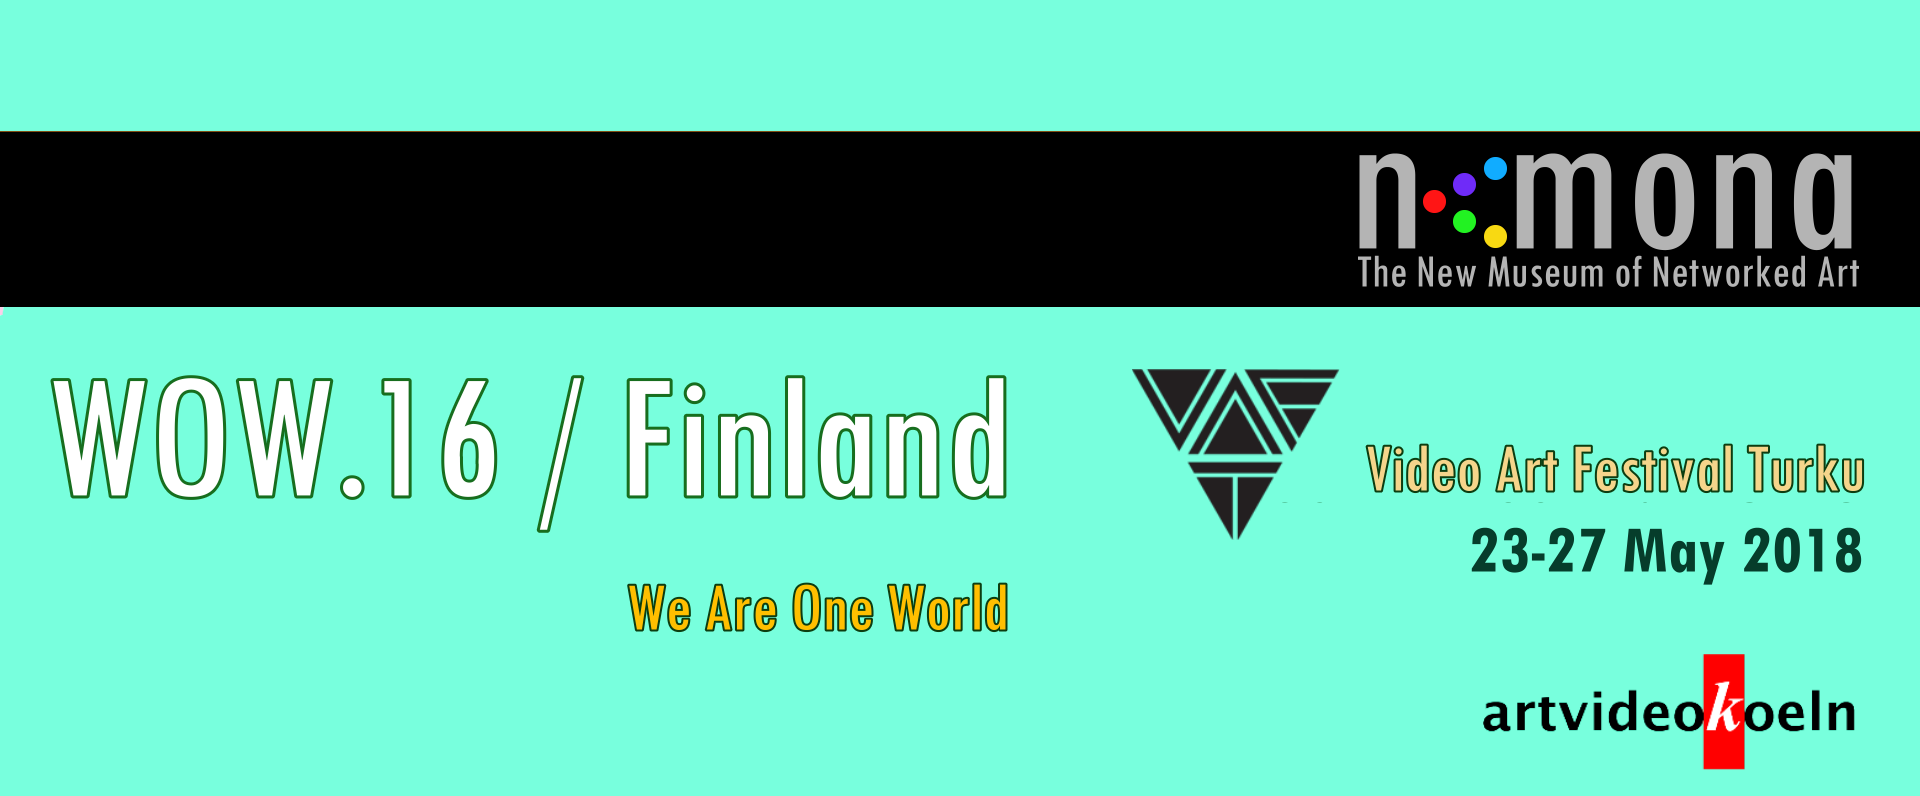 WOW.16 / Finland